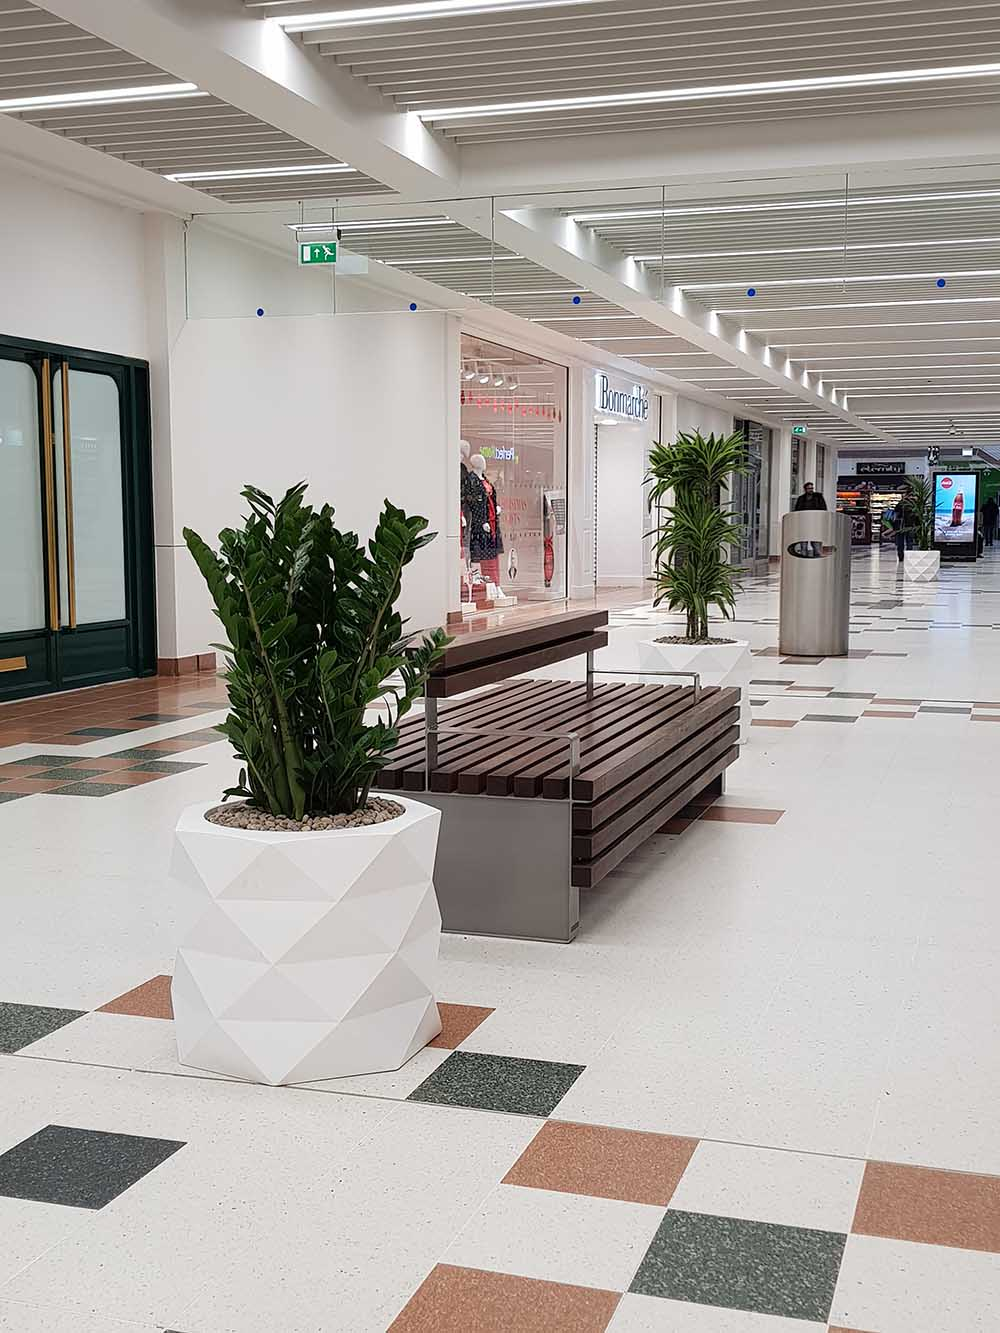 Zamioculcas zamiifolia, Draceana LemonLime and Kentia Palm in designer geometric planters bring shopping centre to life